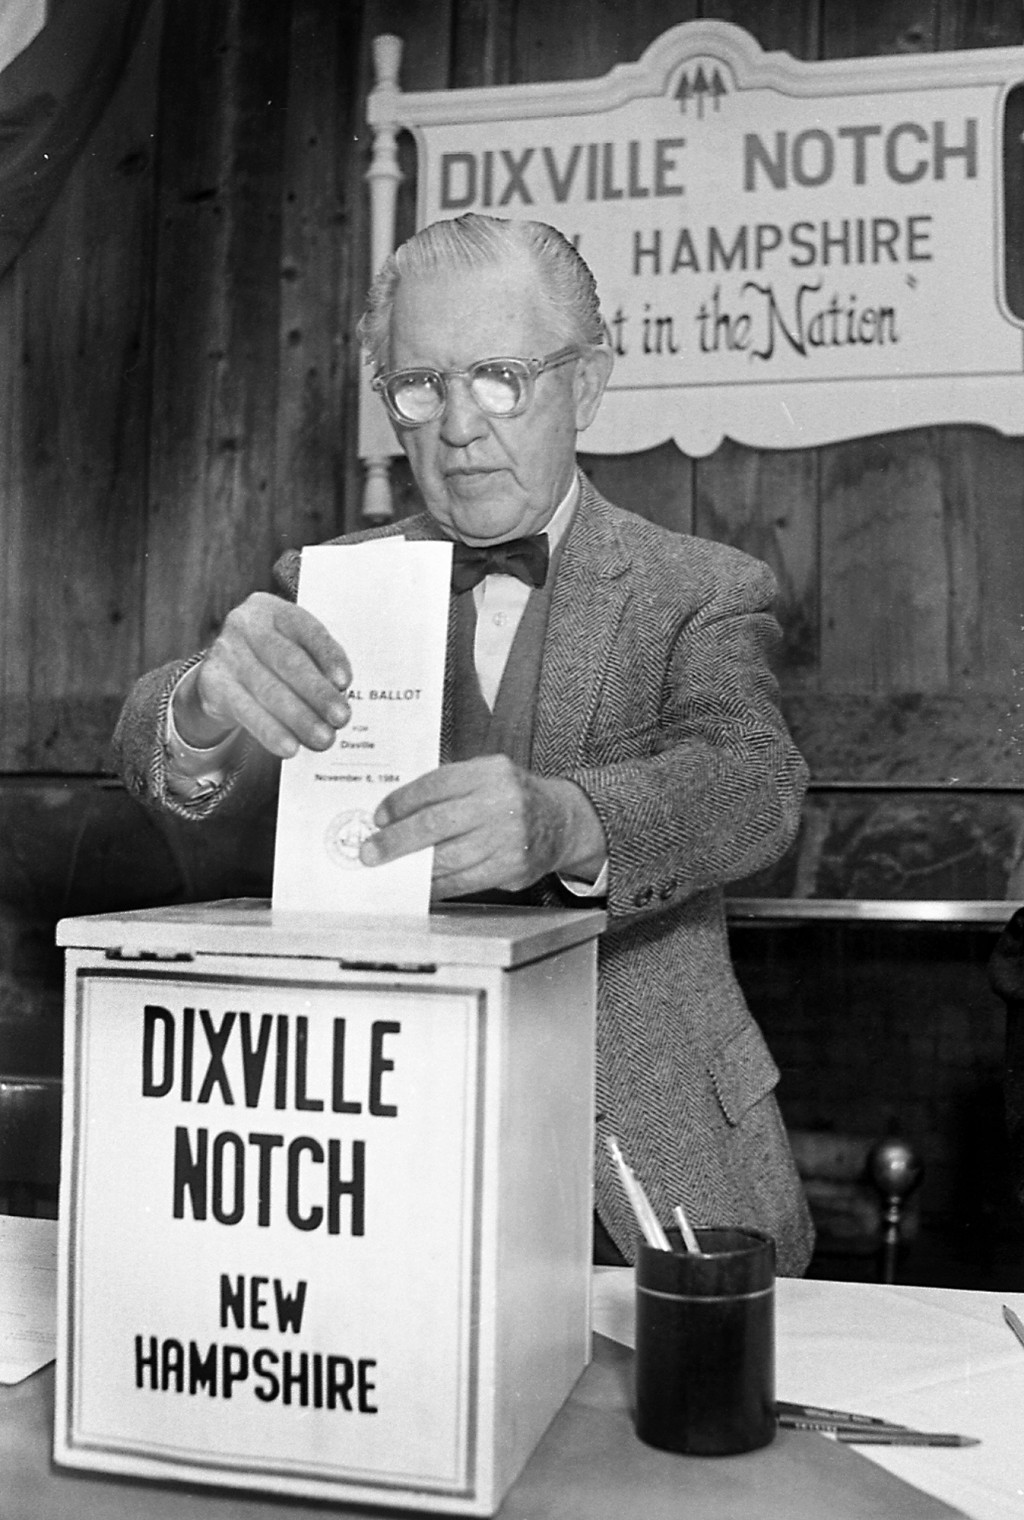 FILE - In this Feb. 28, 1984, file photo, Neil Tillotson gets ready to cast the first ballot in the New Hampshire presidential primary just after midn...